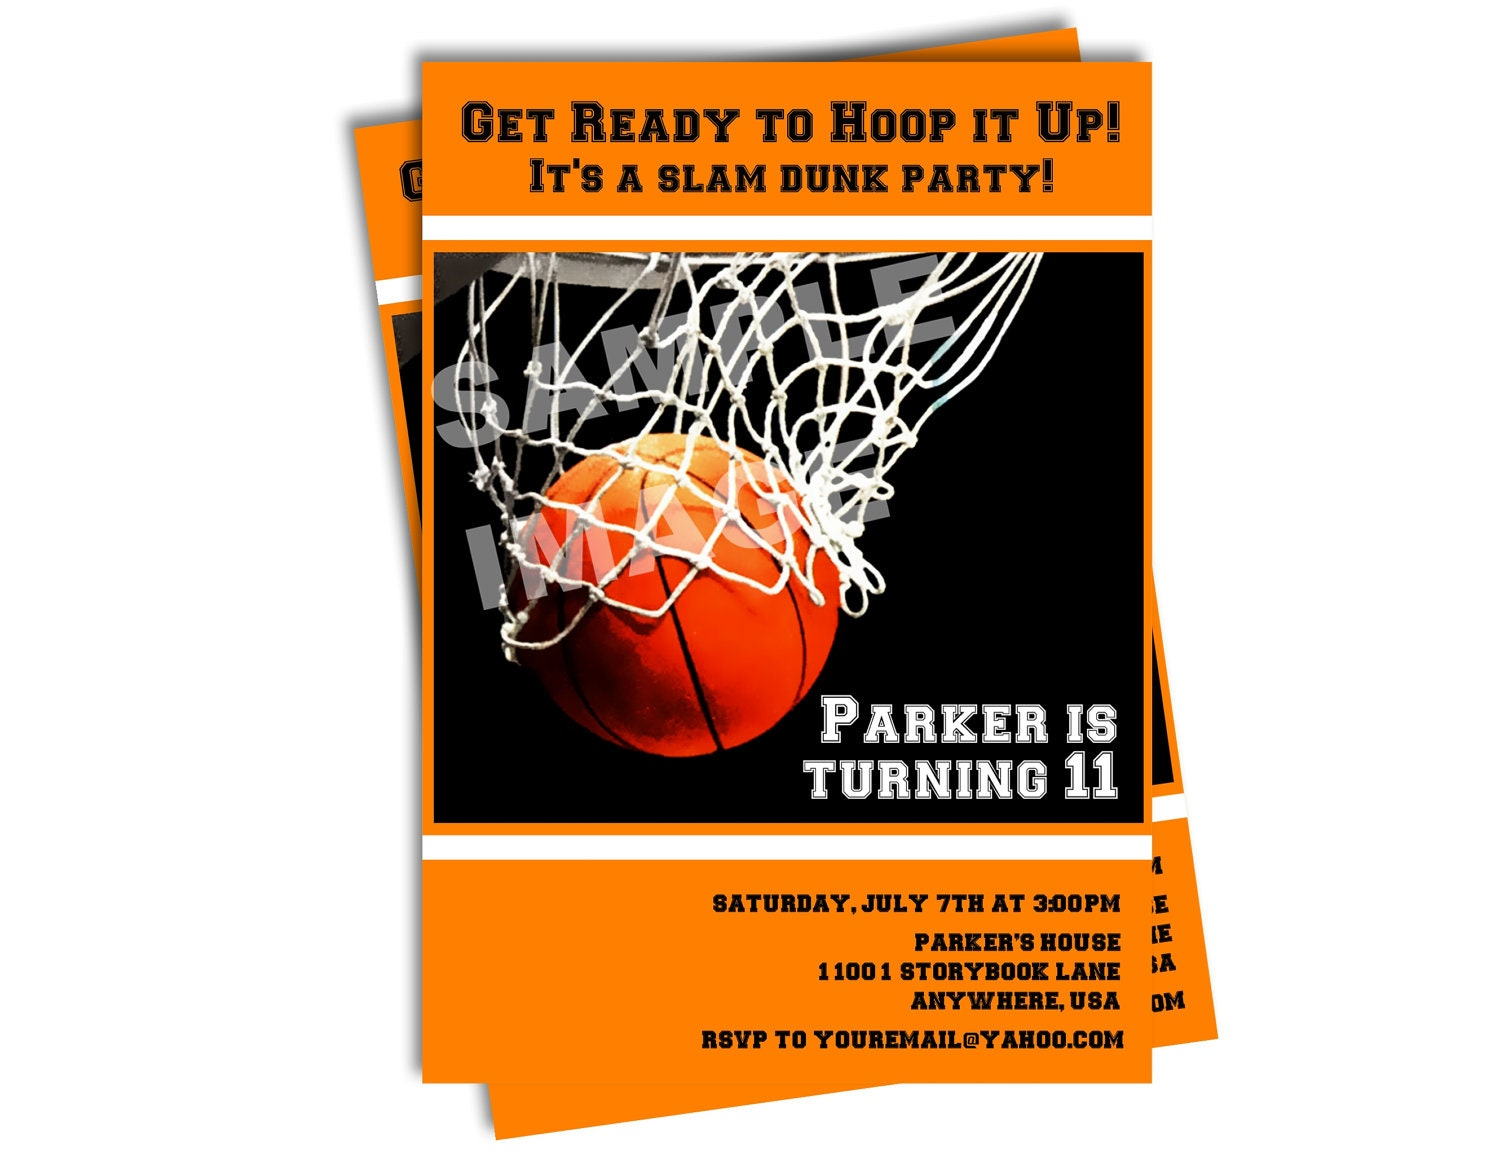 Basketball Party Invitations is one of our best ideas you might choose for invitation design